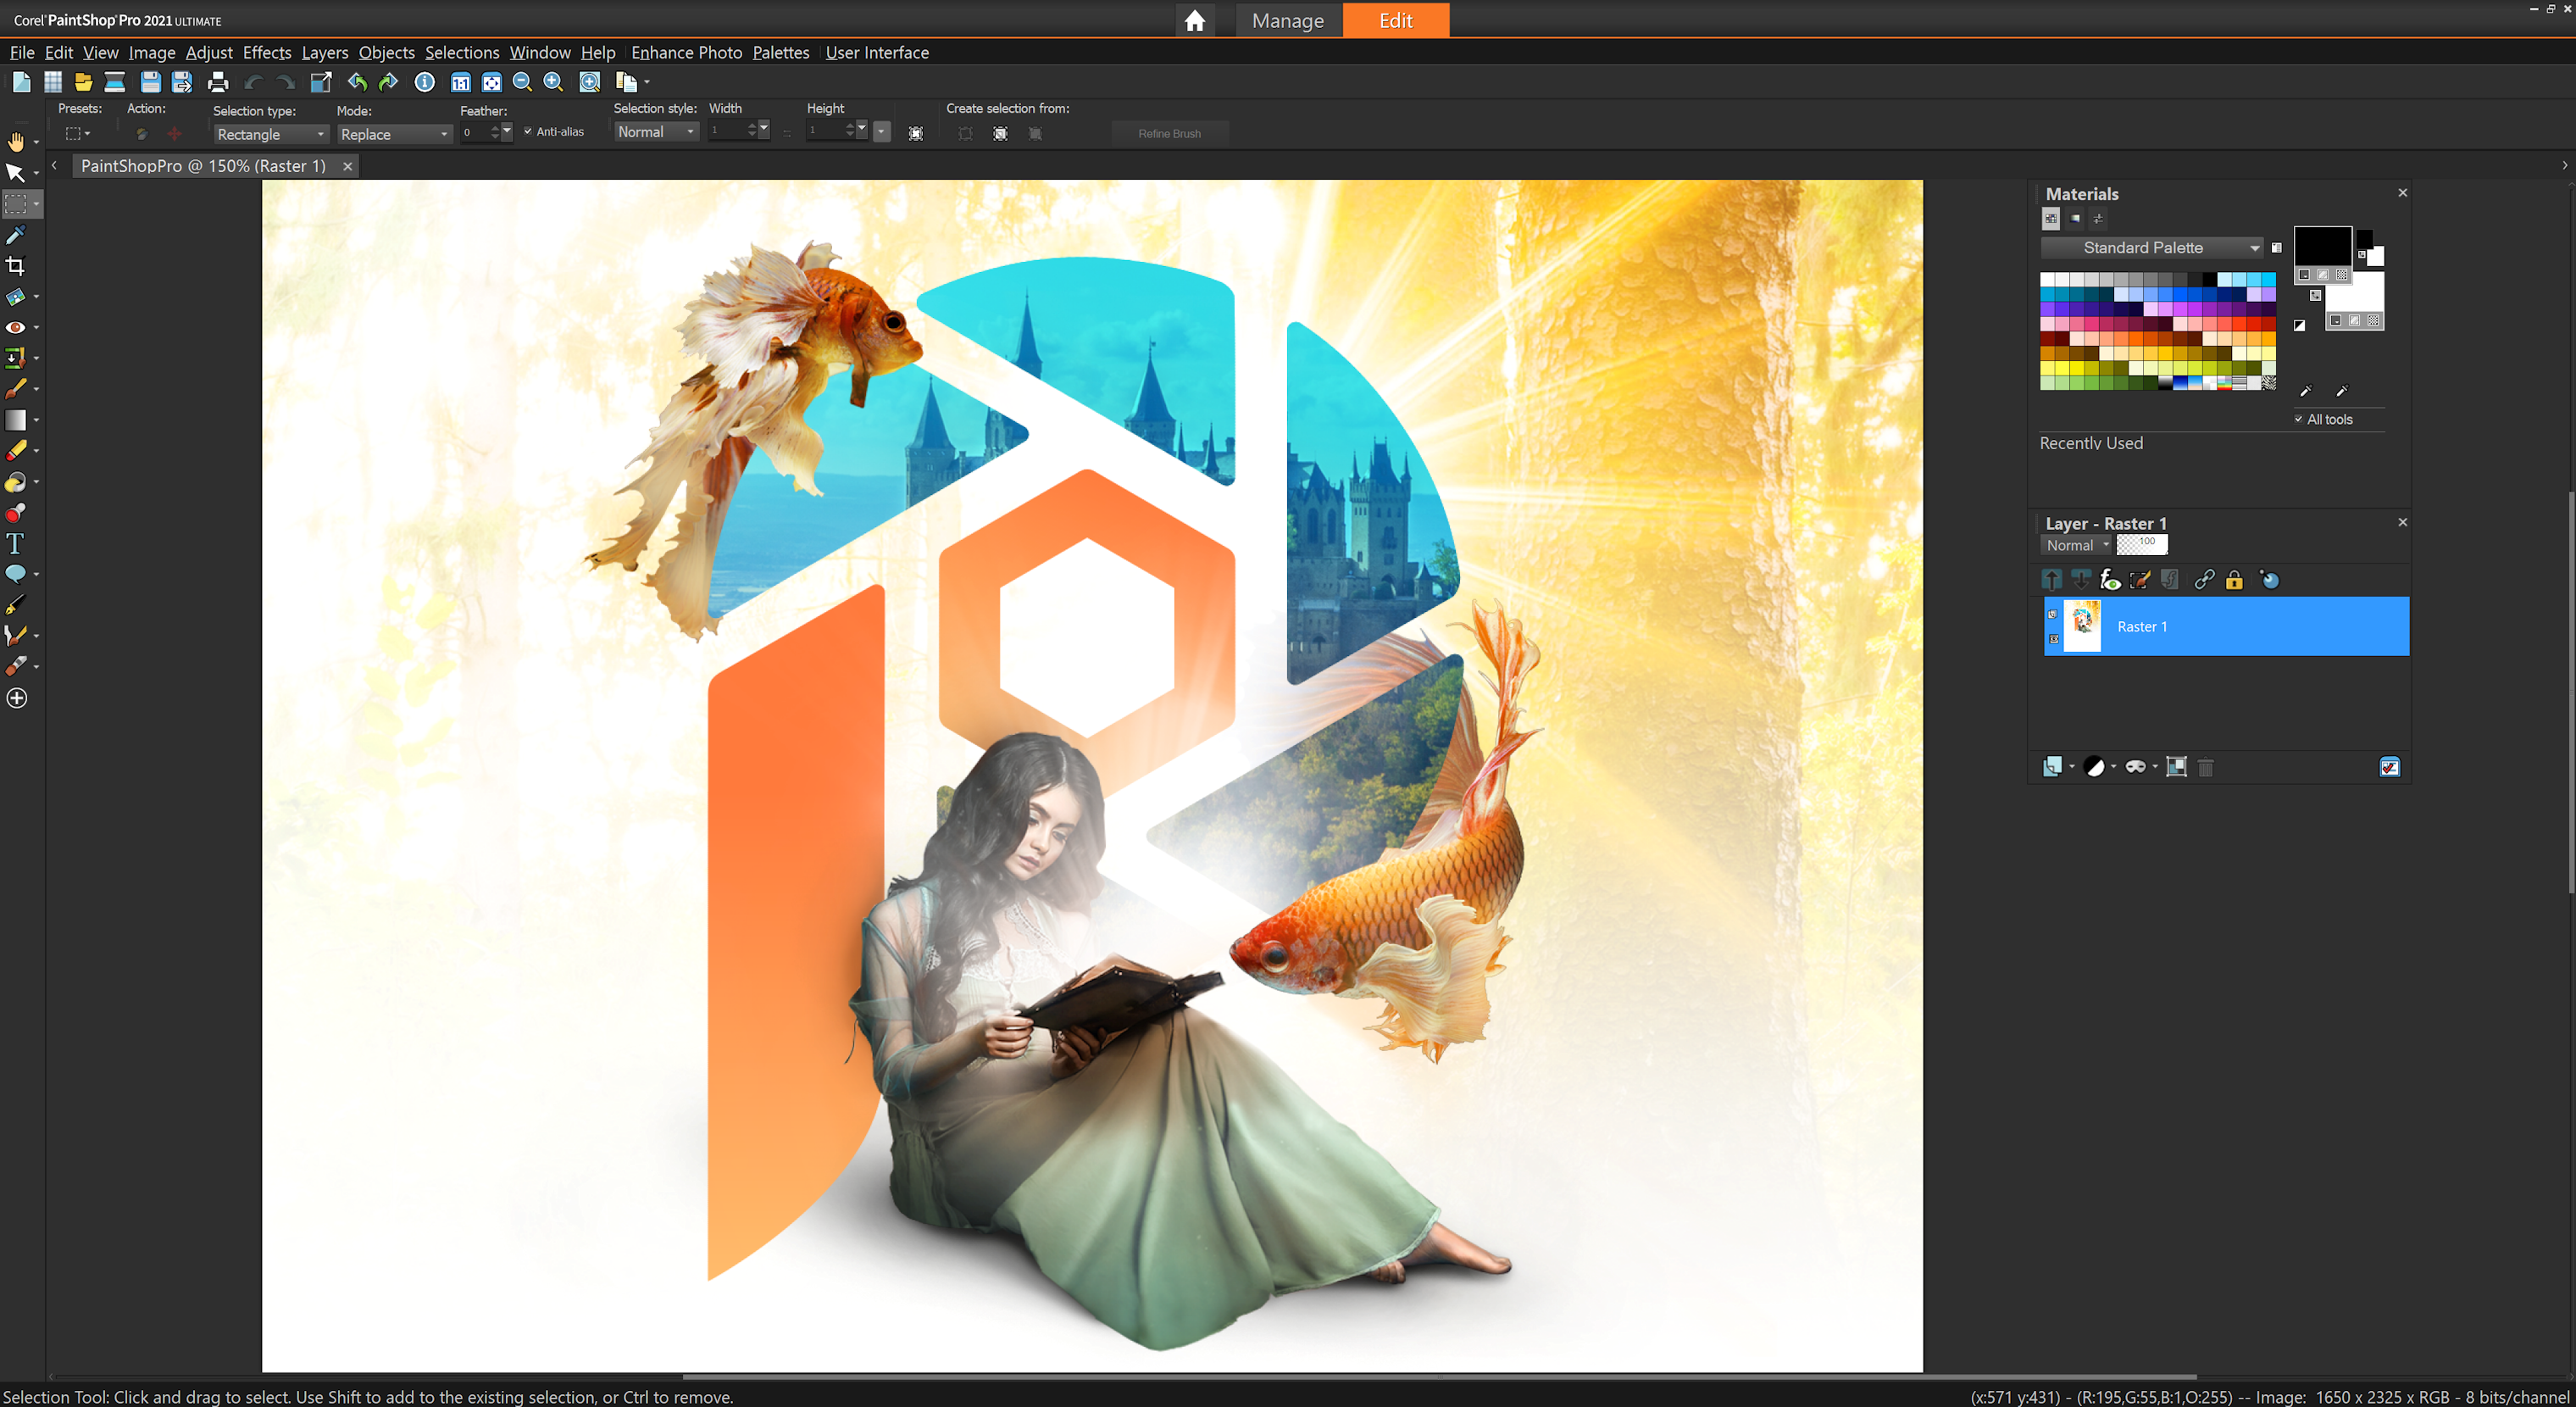 PaintShop Pro 2021 Puts the Focus on Creativity: Time-Saving AI Helps Photographers Achieve Previously Unattainable Results